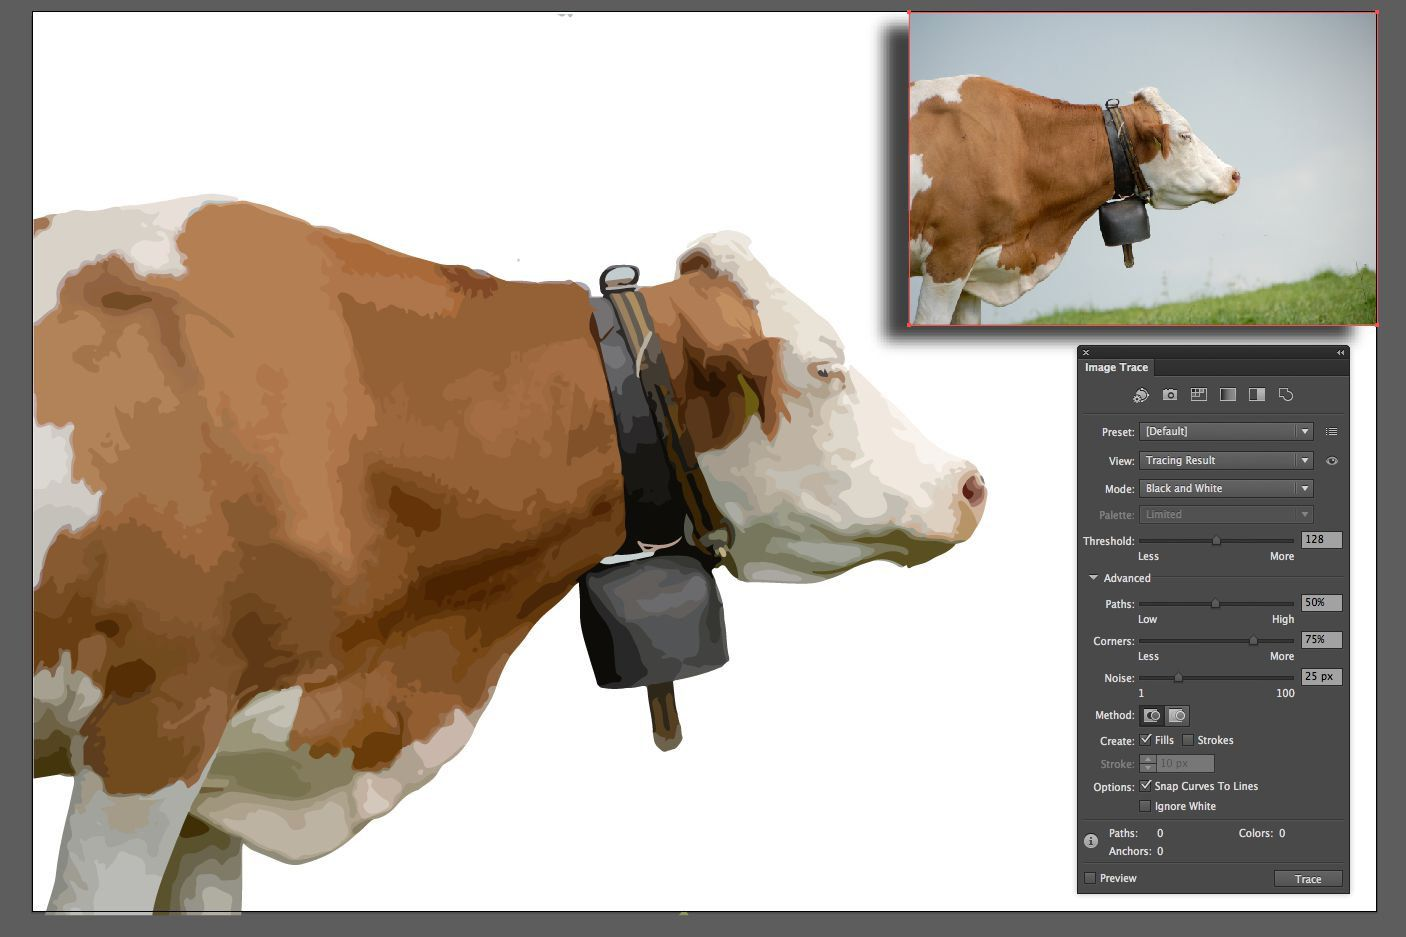 How To Use Image Trace In Adobe Illustrator Cc